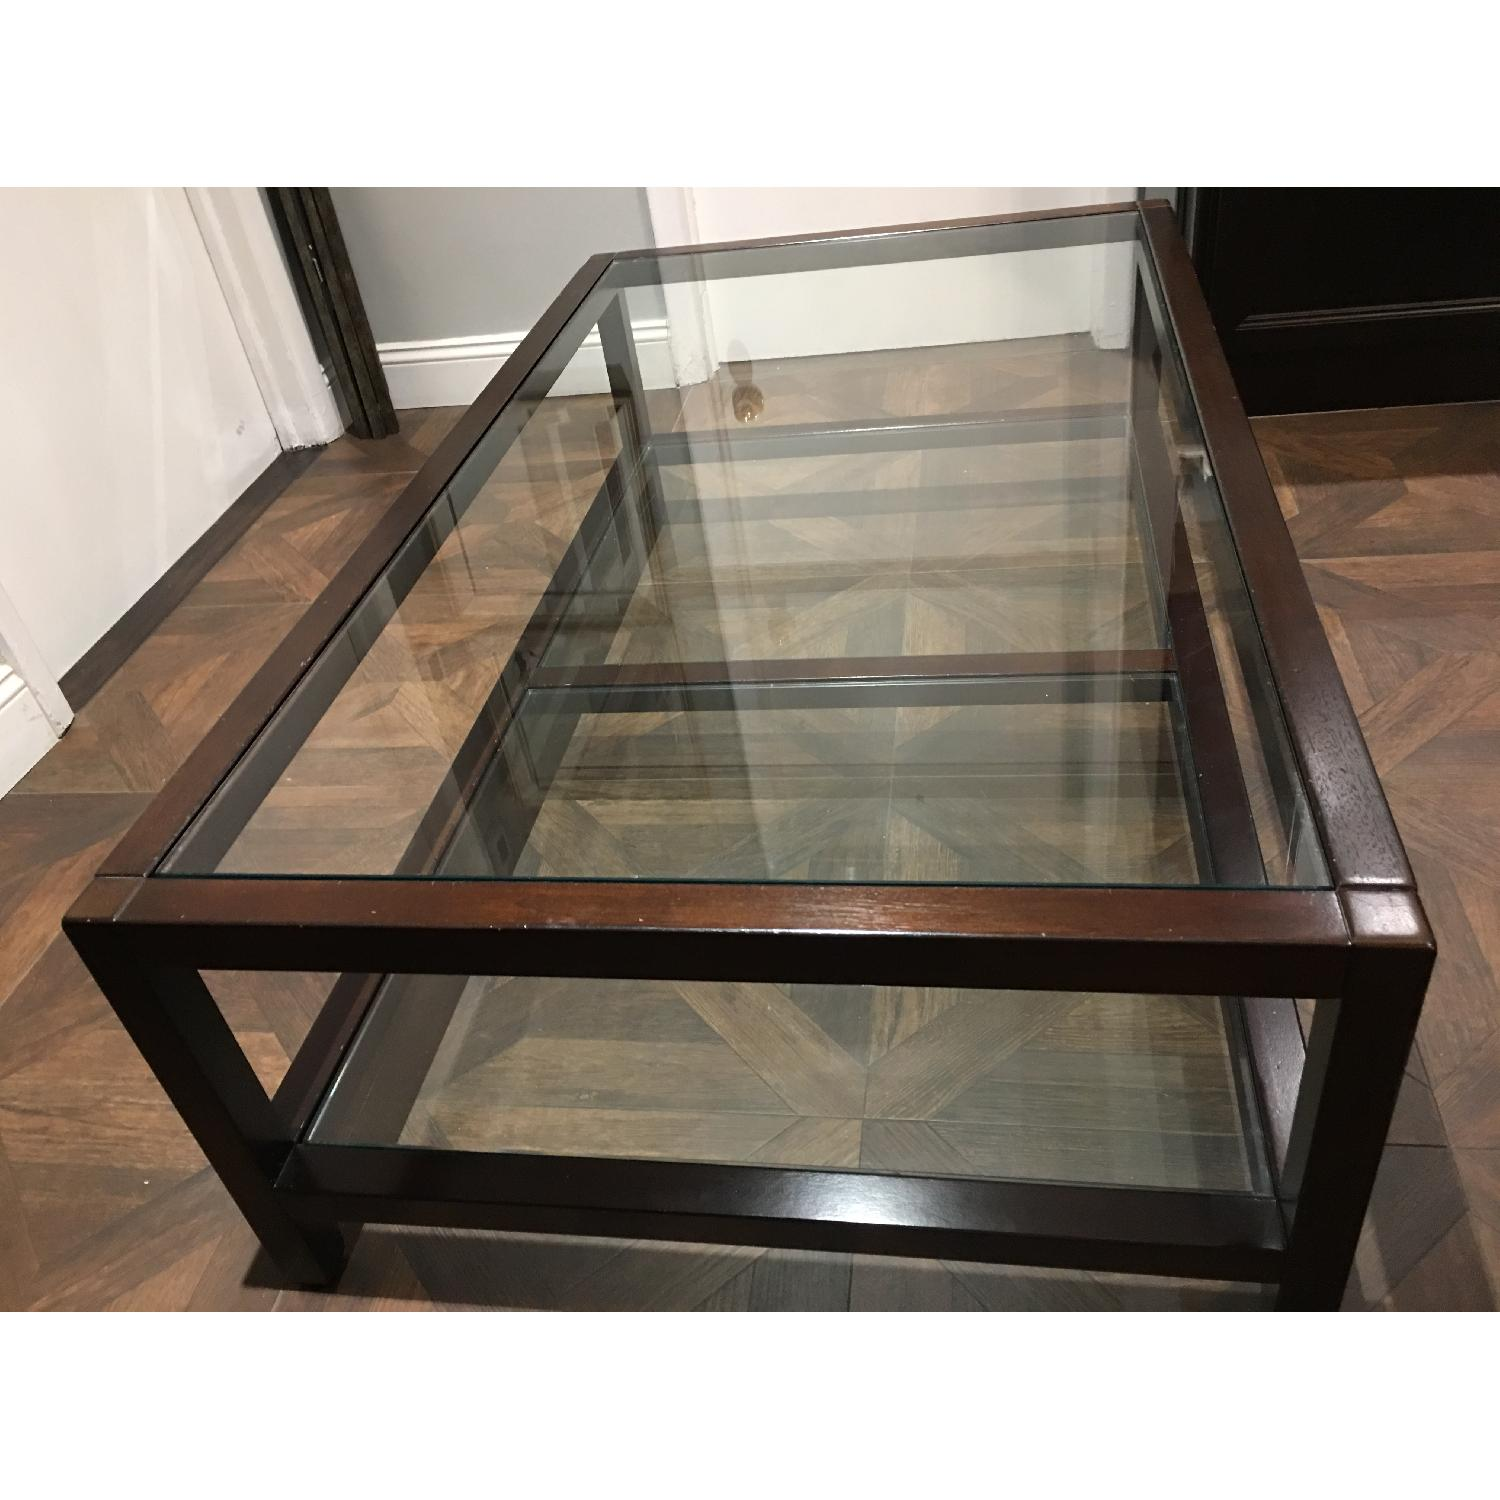 Pottery Barn Glass & Wood Coffee Table - image-5